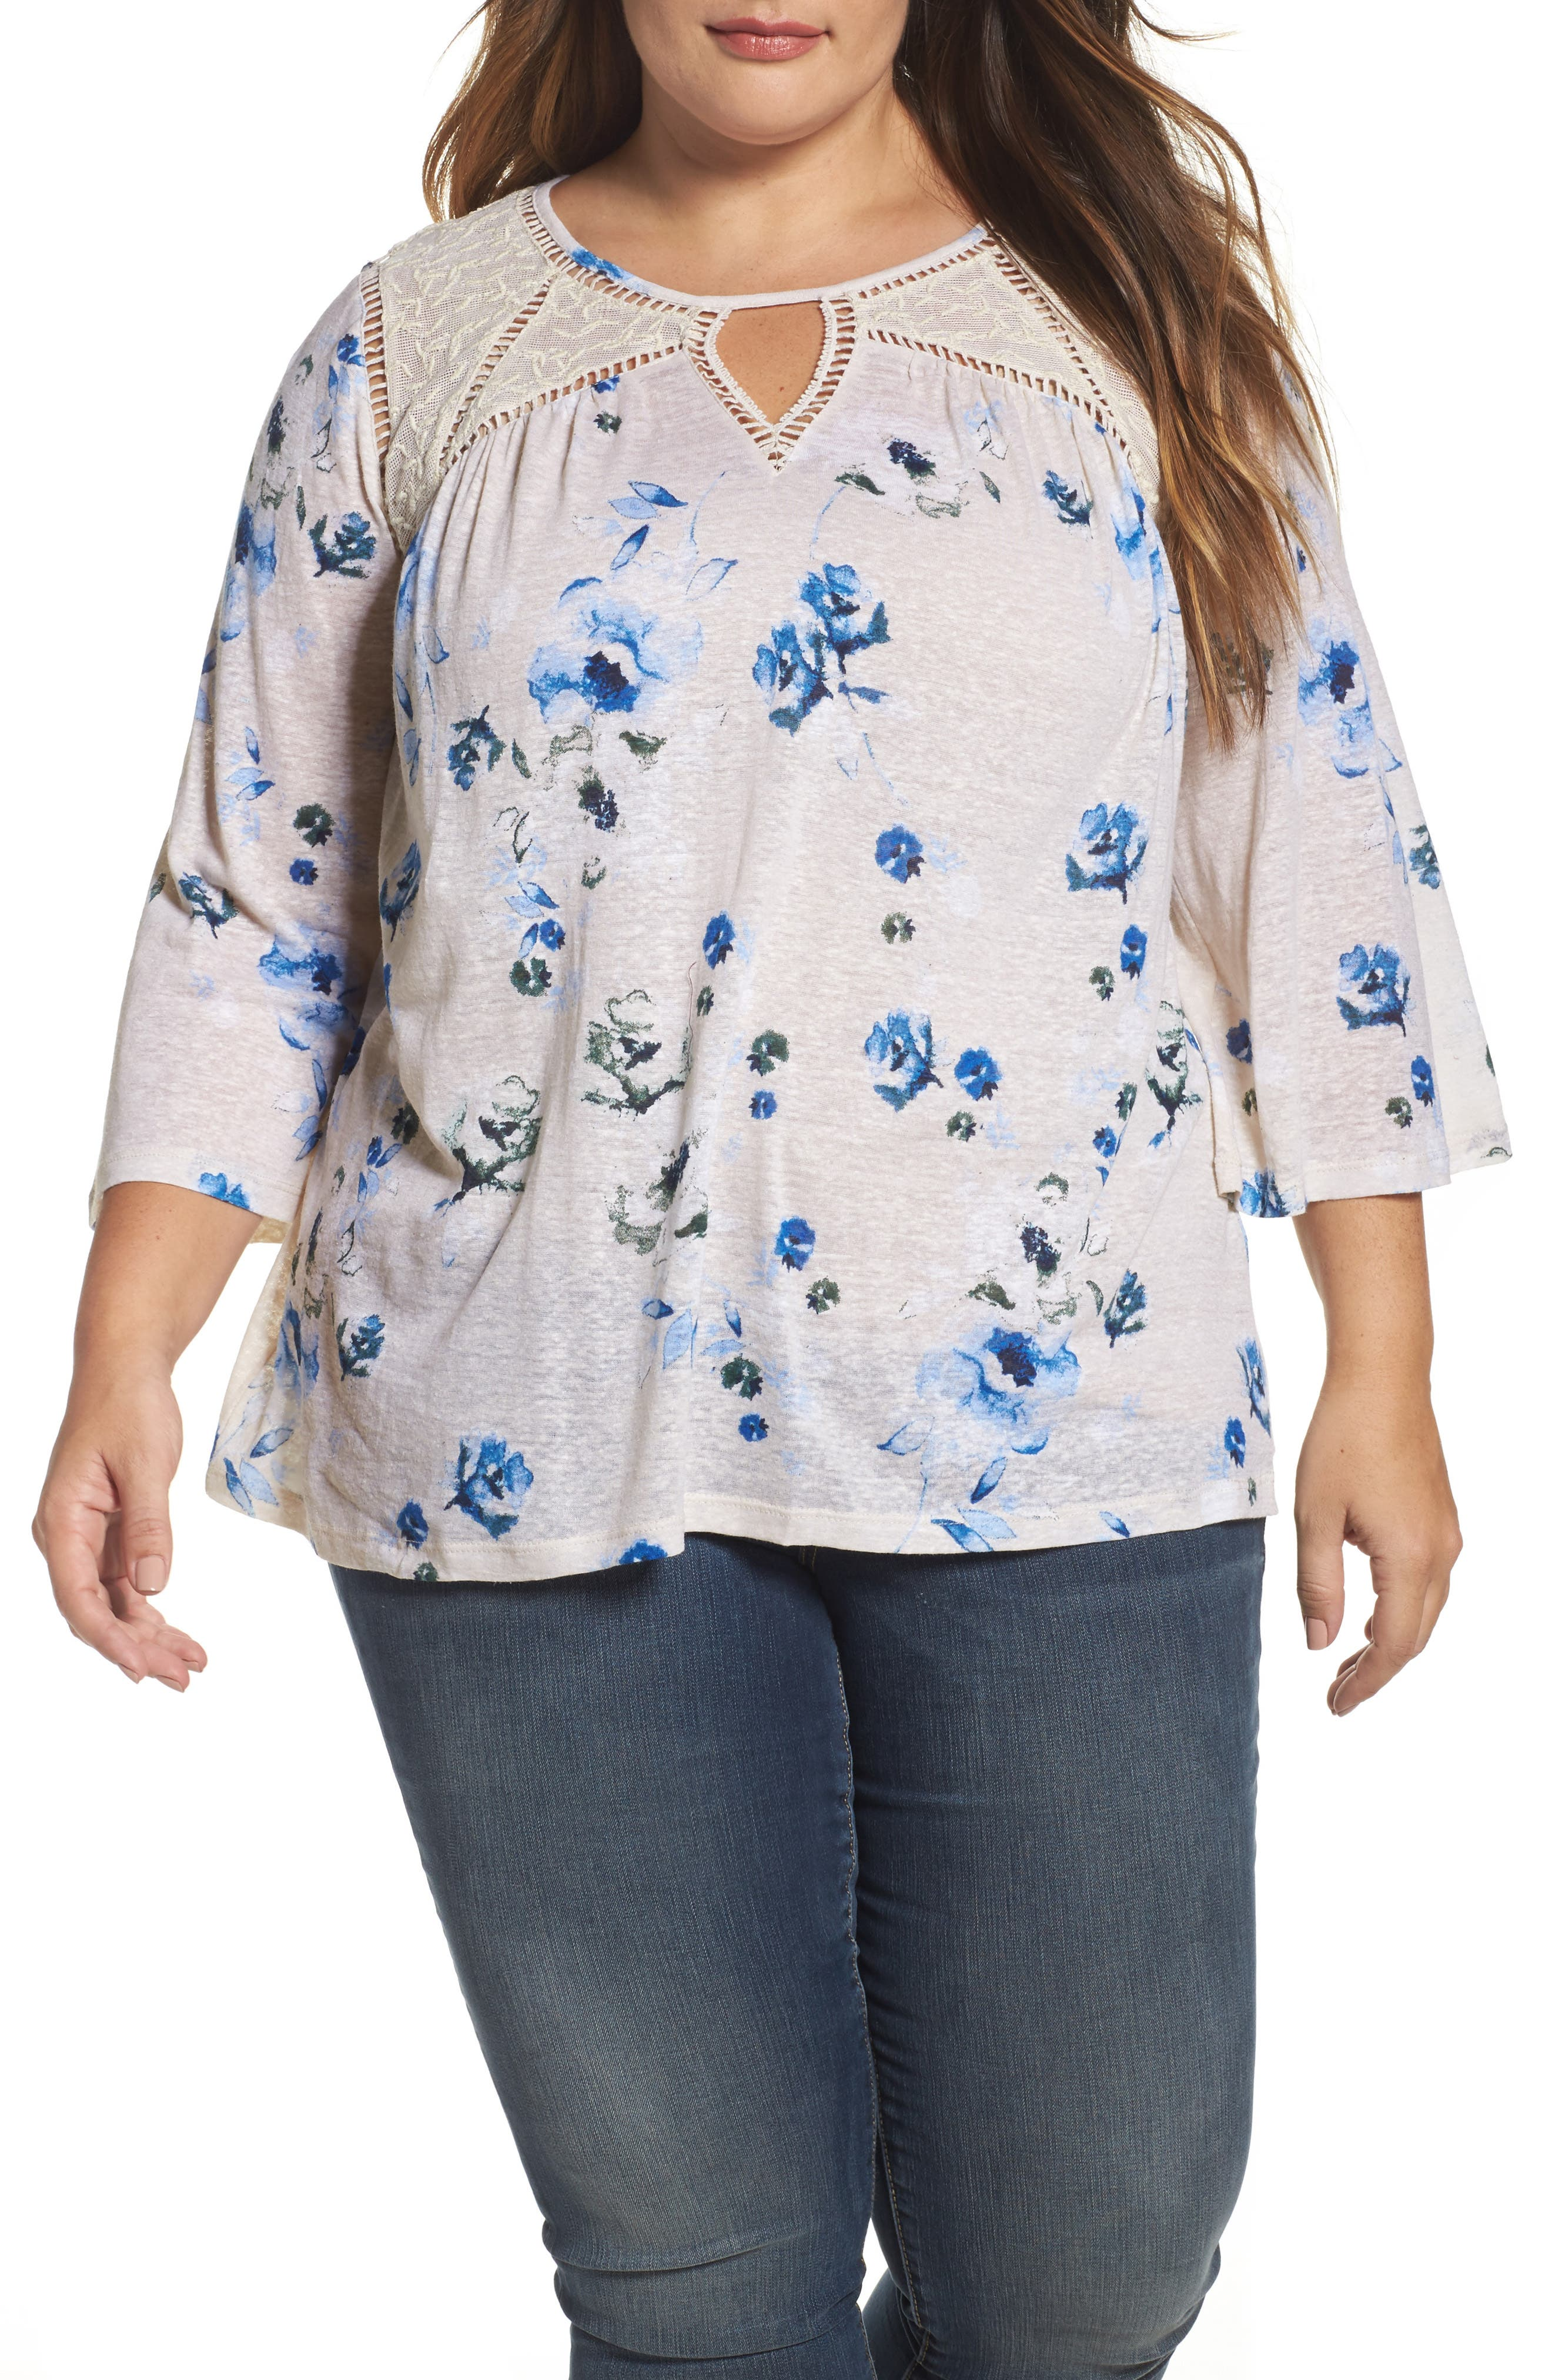 Main Image - Lucky Brand Lace Yoke Floral Peasant Top (Plus Size)